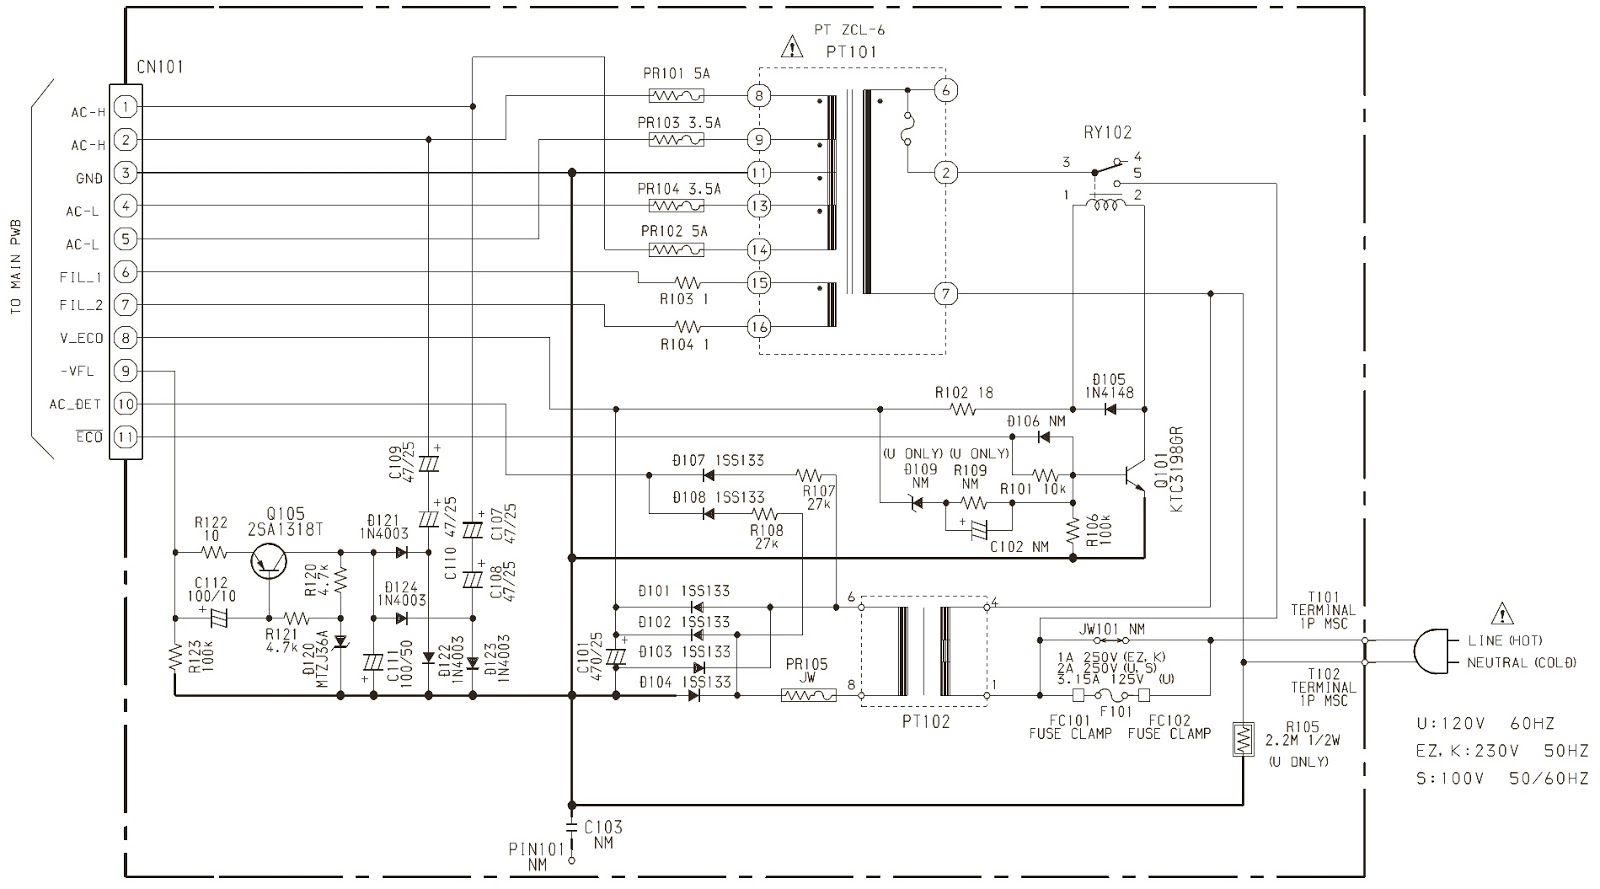 Moffett Wiring Diagram - Wiring Diagram Update on pinout diagrams, friendship bracelet diagrams, transformer diagrams, switch diagrams, lighting diagrams, electronic circuit diagrams, battery diagrams, internet of things diagrams, sincgars radio configurations diagrams, motor diagrams, hvac diagrams, gmc fuse box diagrams, troubleshooting diagrams, electrical diagrams, led circuit diagrams, engine diagrams, series and parallel circuits diagrams, smart car diagrams, honda motorcycle repair diagrams,